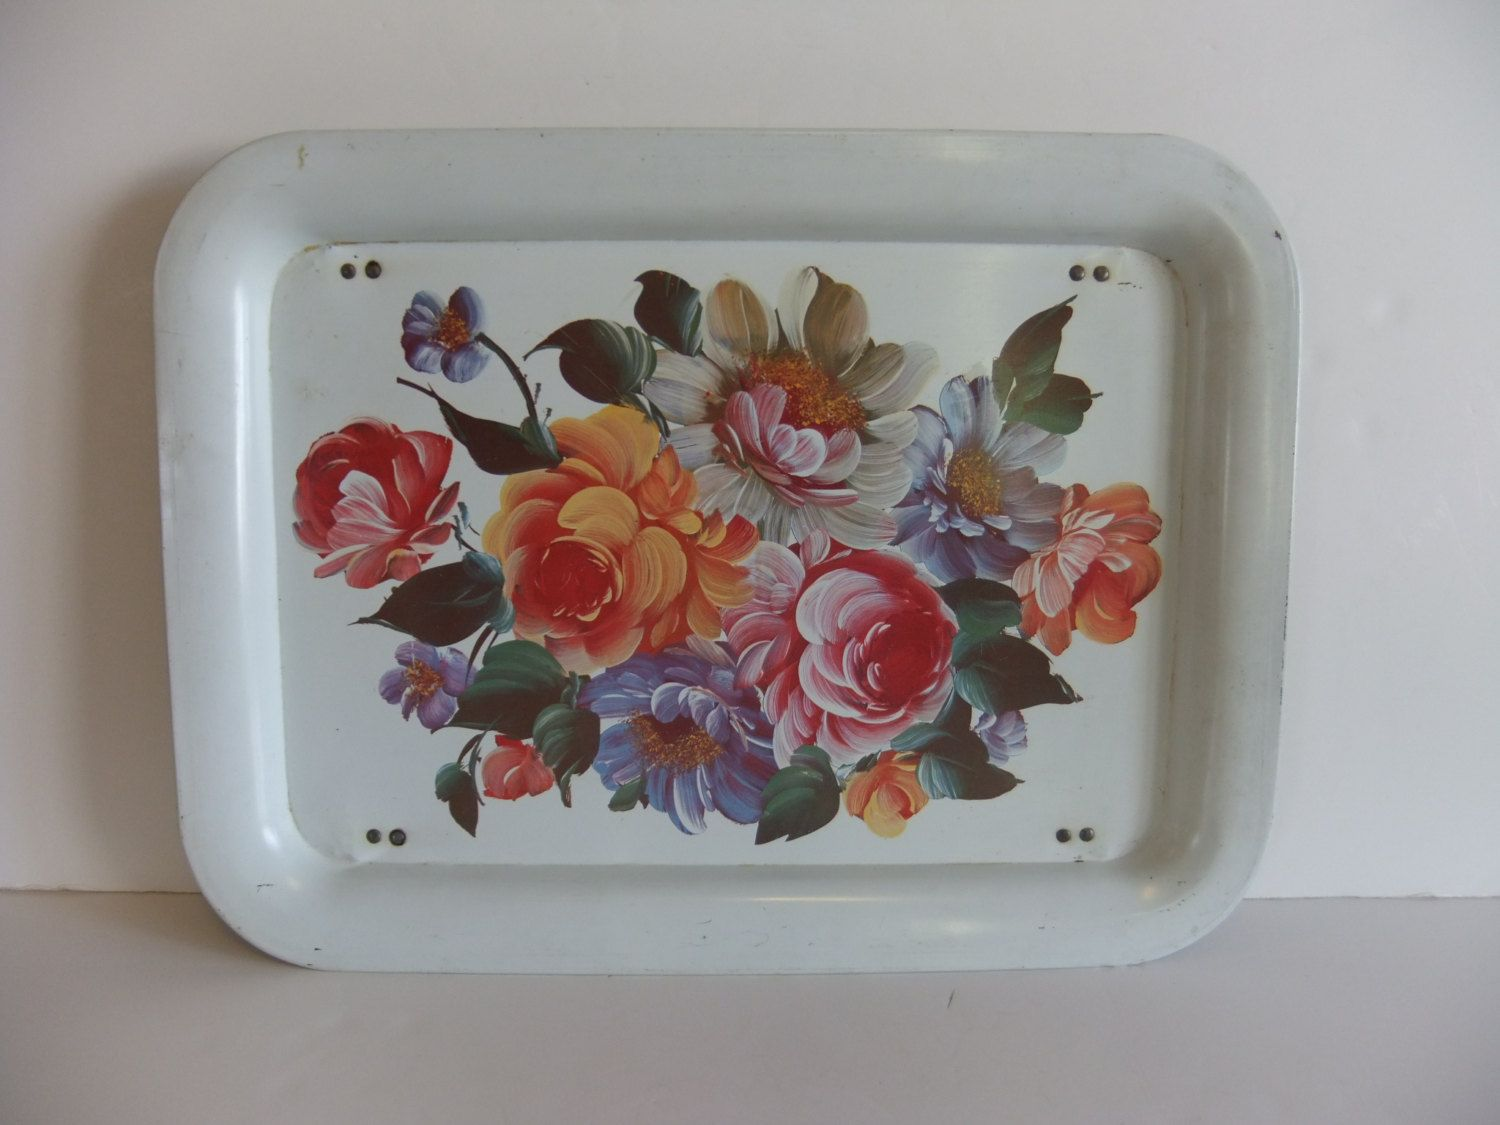 Vintage lap Tray, Metal tray, Flower floral serving tray